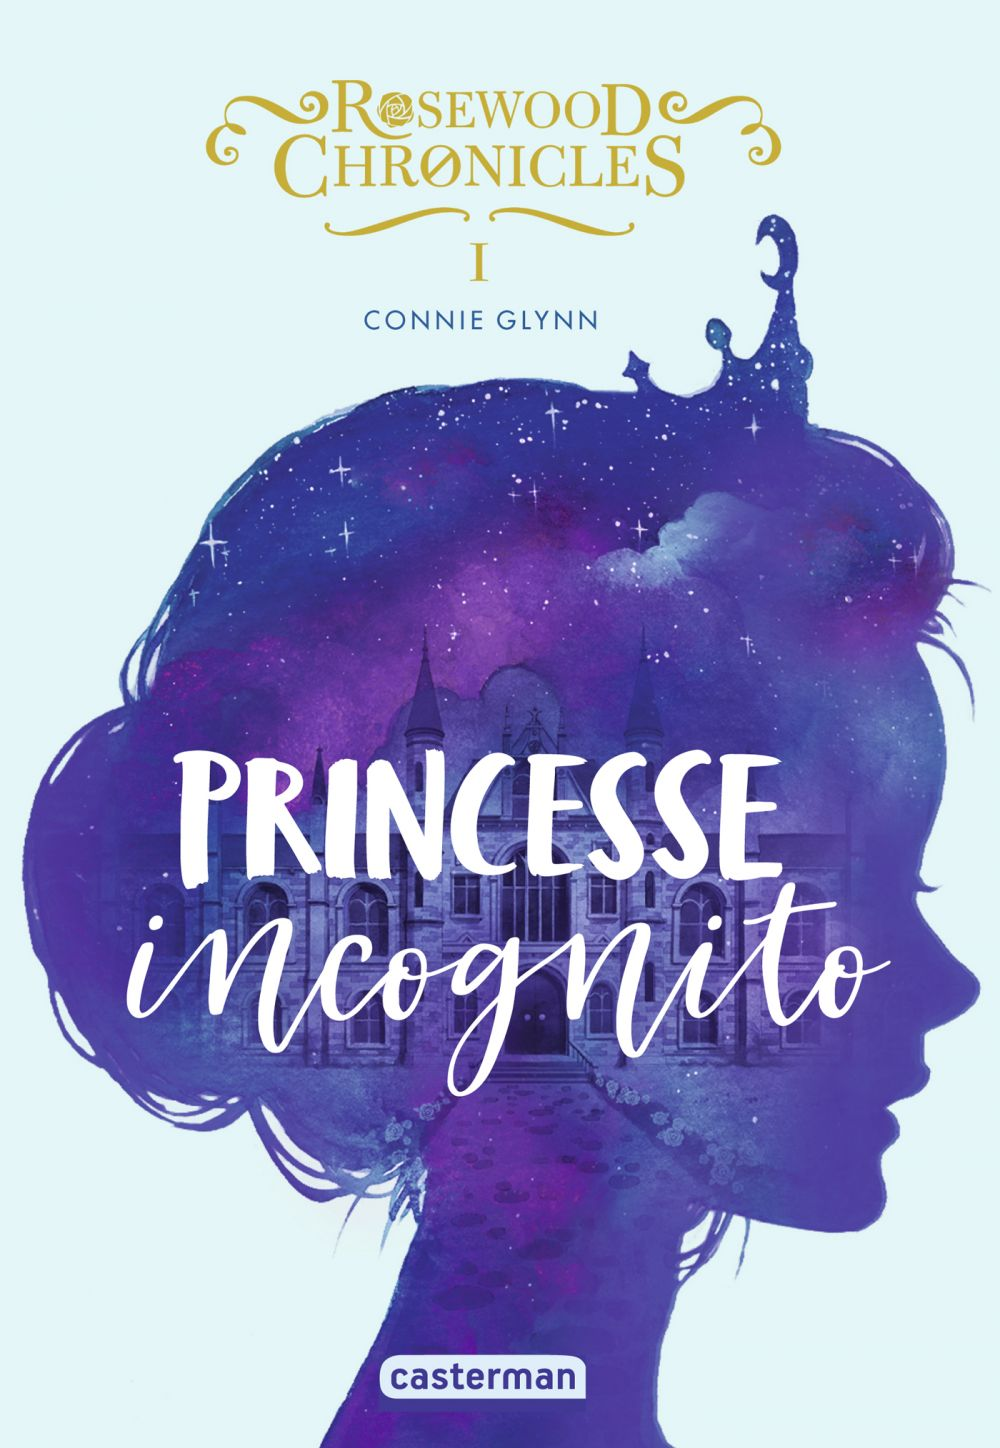 Rosewood Chronicles (Tome 1) - Princesse incognito | Glynn, Connie. Auteur